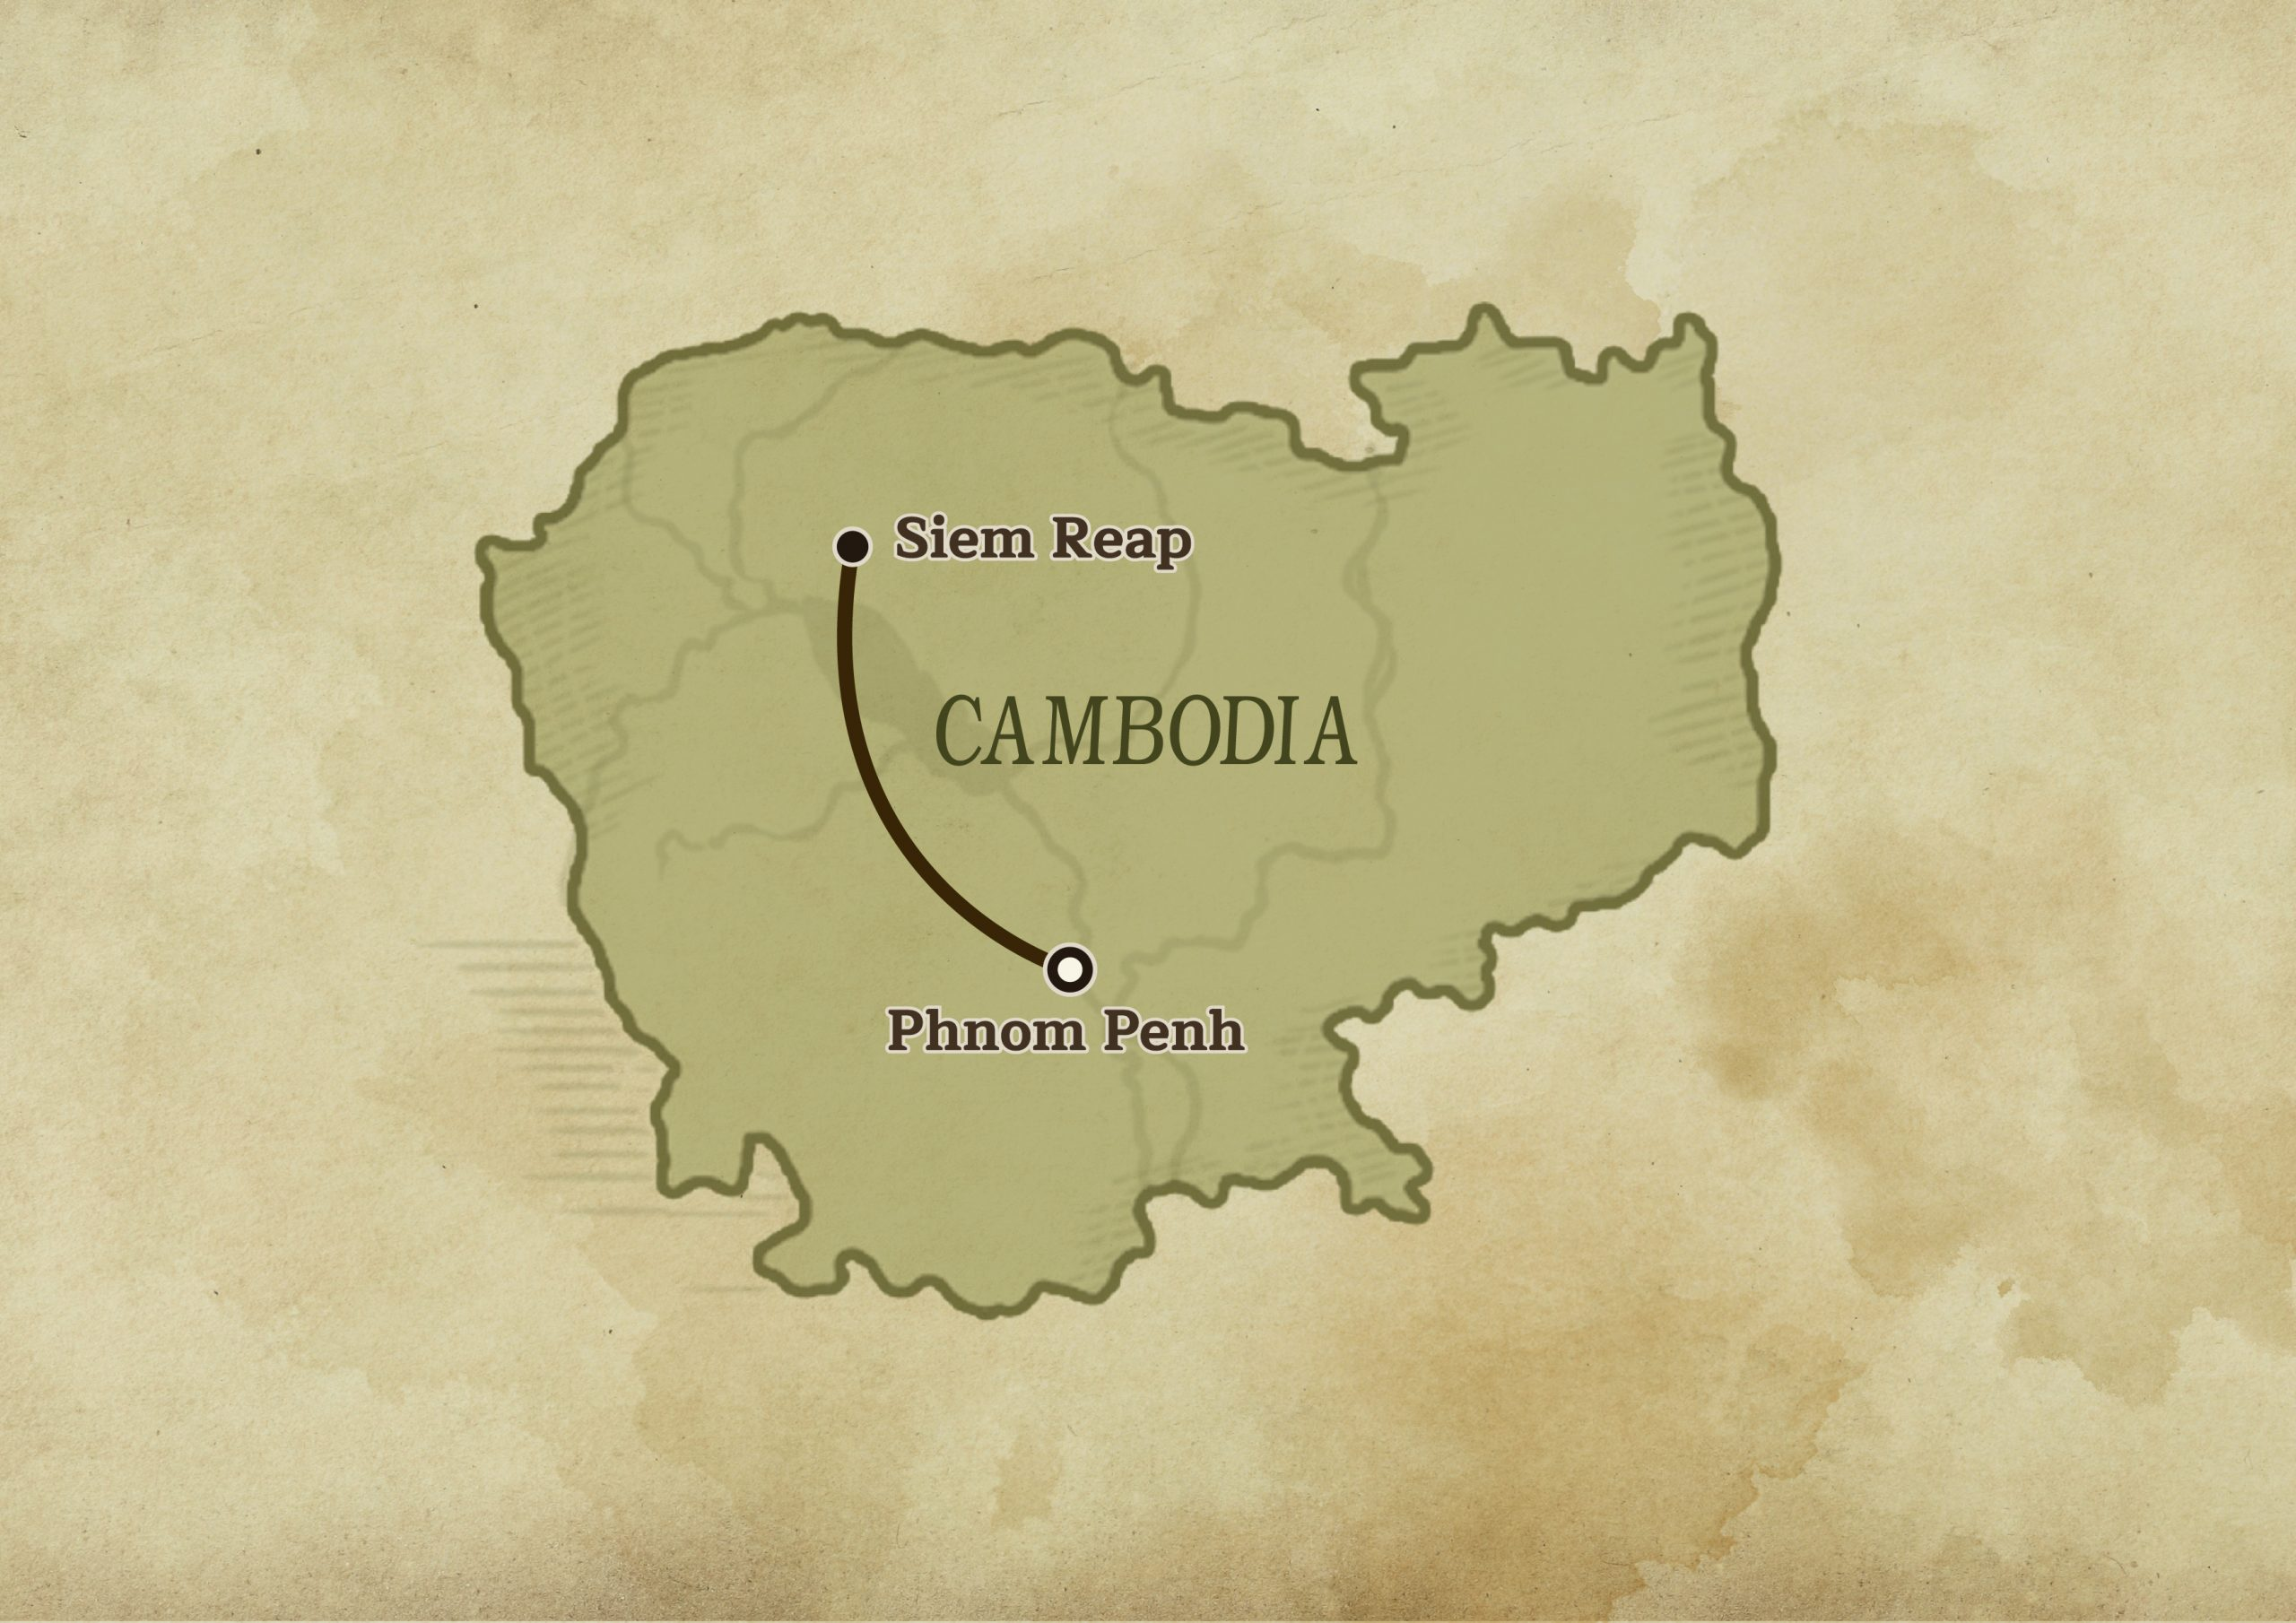 Map of Cambodia showing the distance between Phnom Penh and Seim Reap